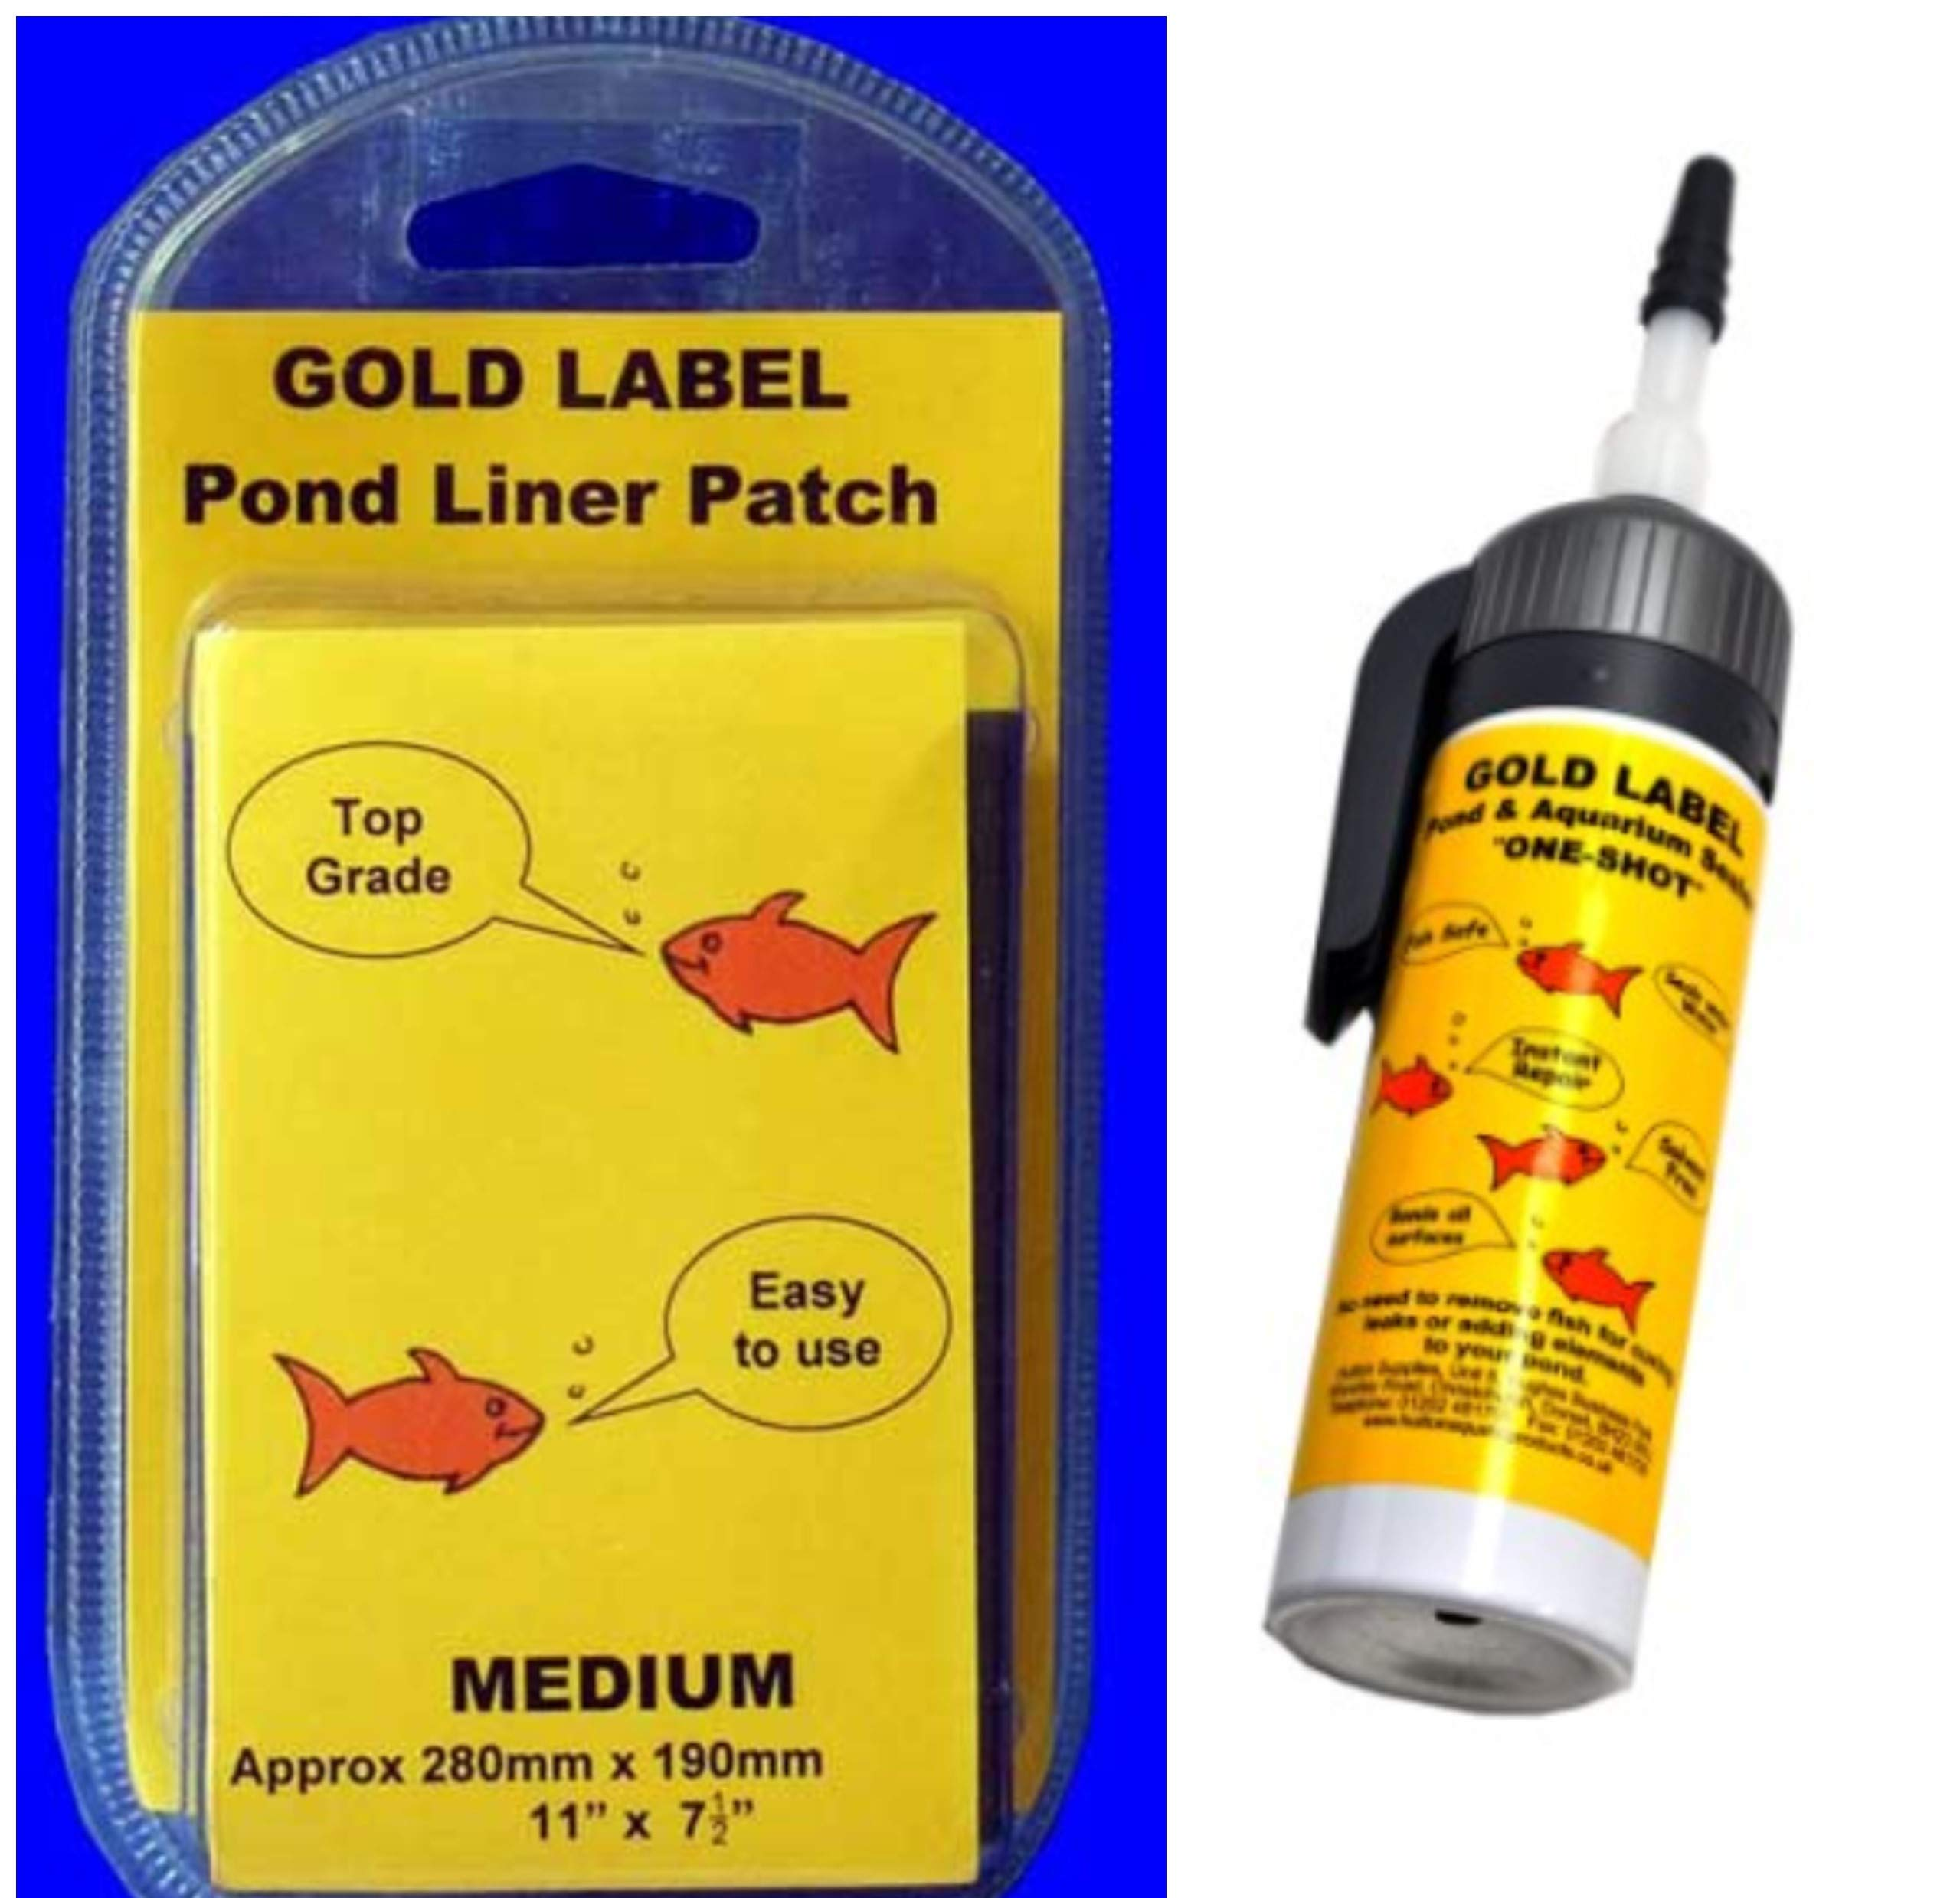 Koi Pond Water Garden Liner Leak Repair Kit, Includes One Shot Sealant and Pond Liner Patch